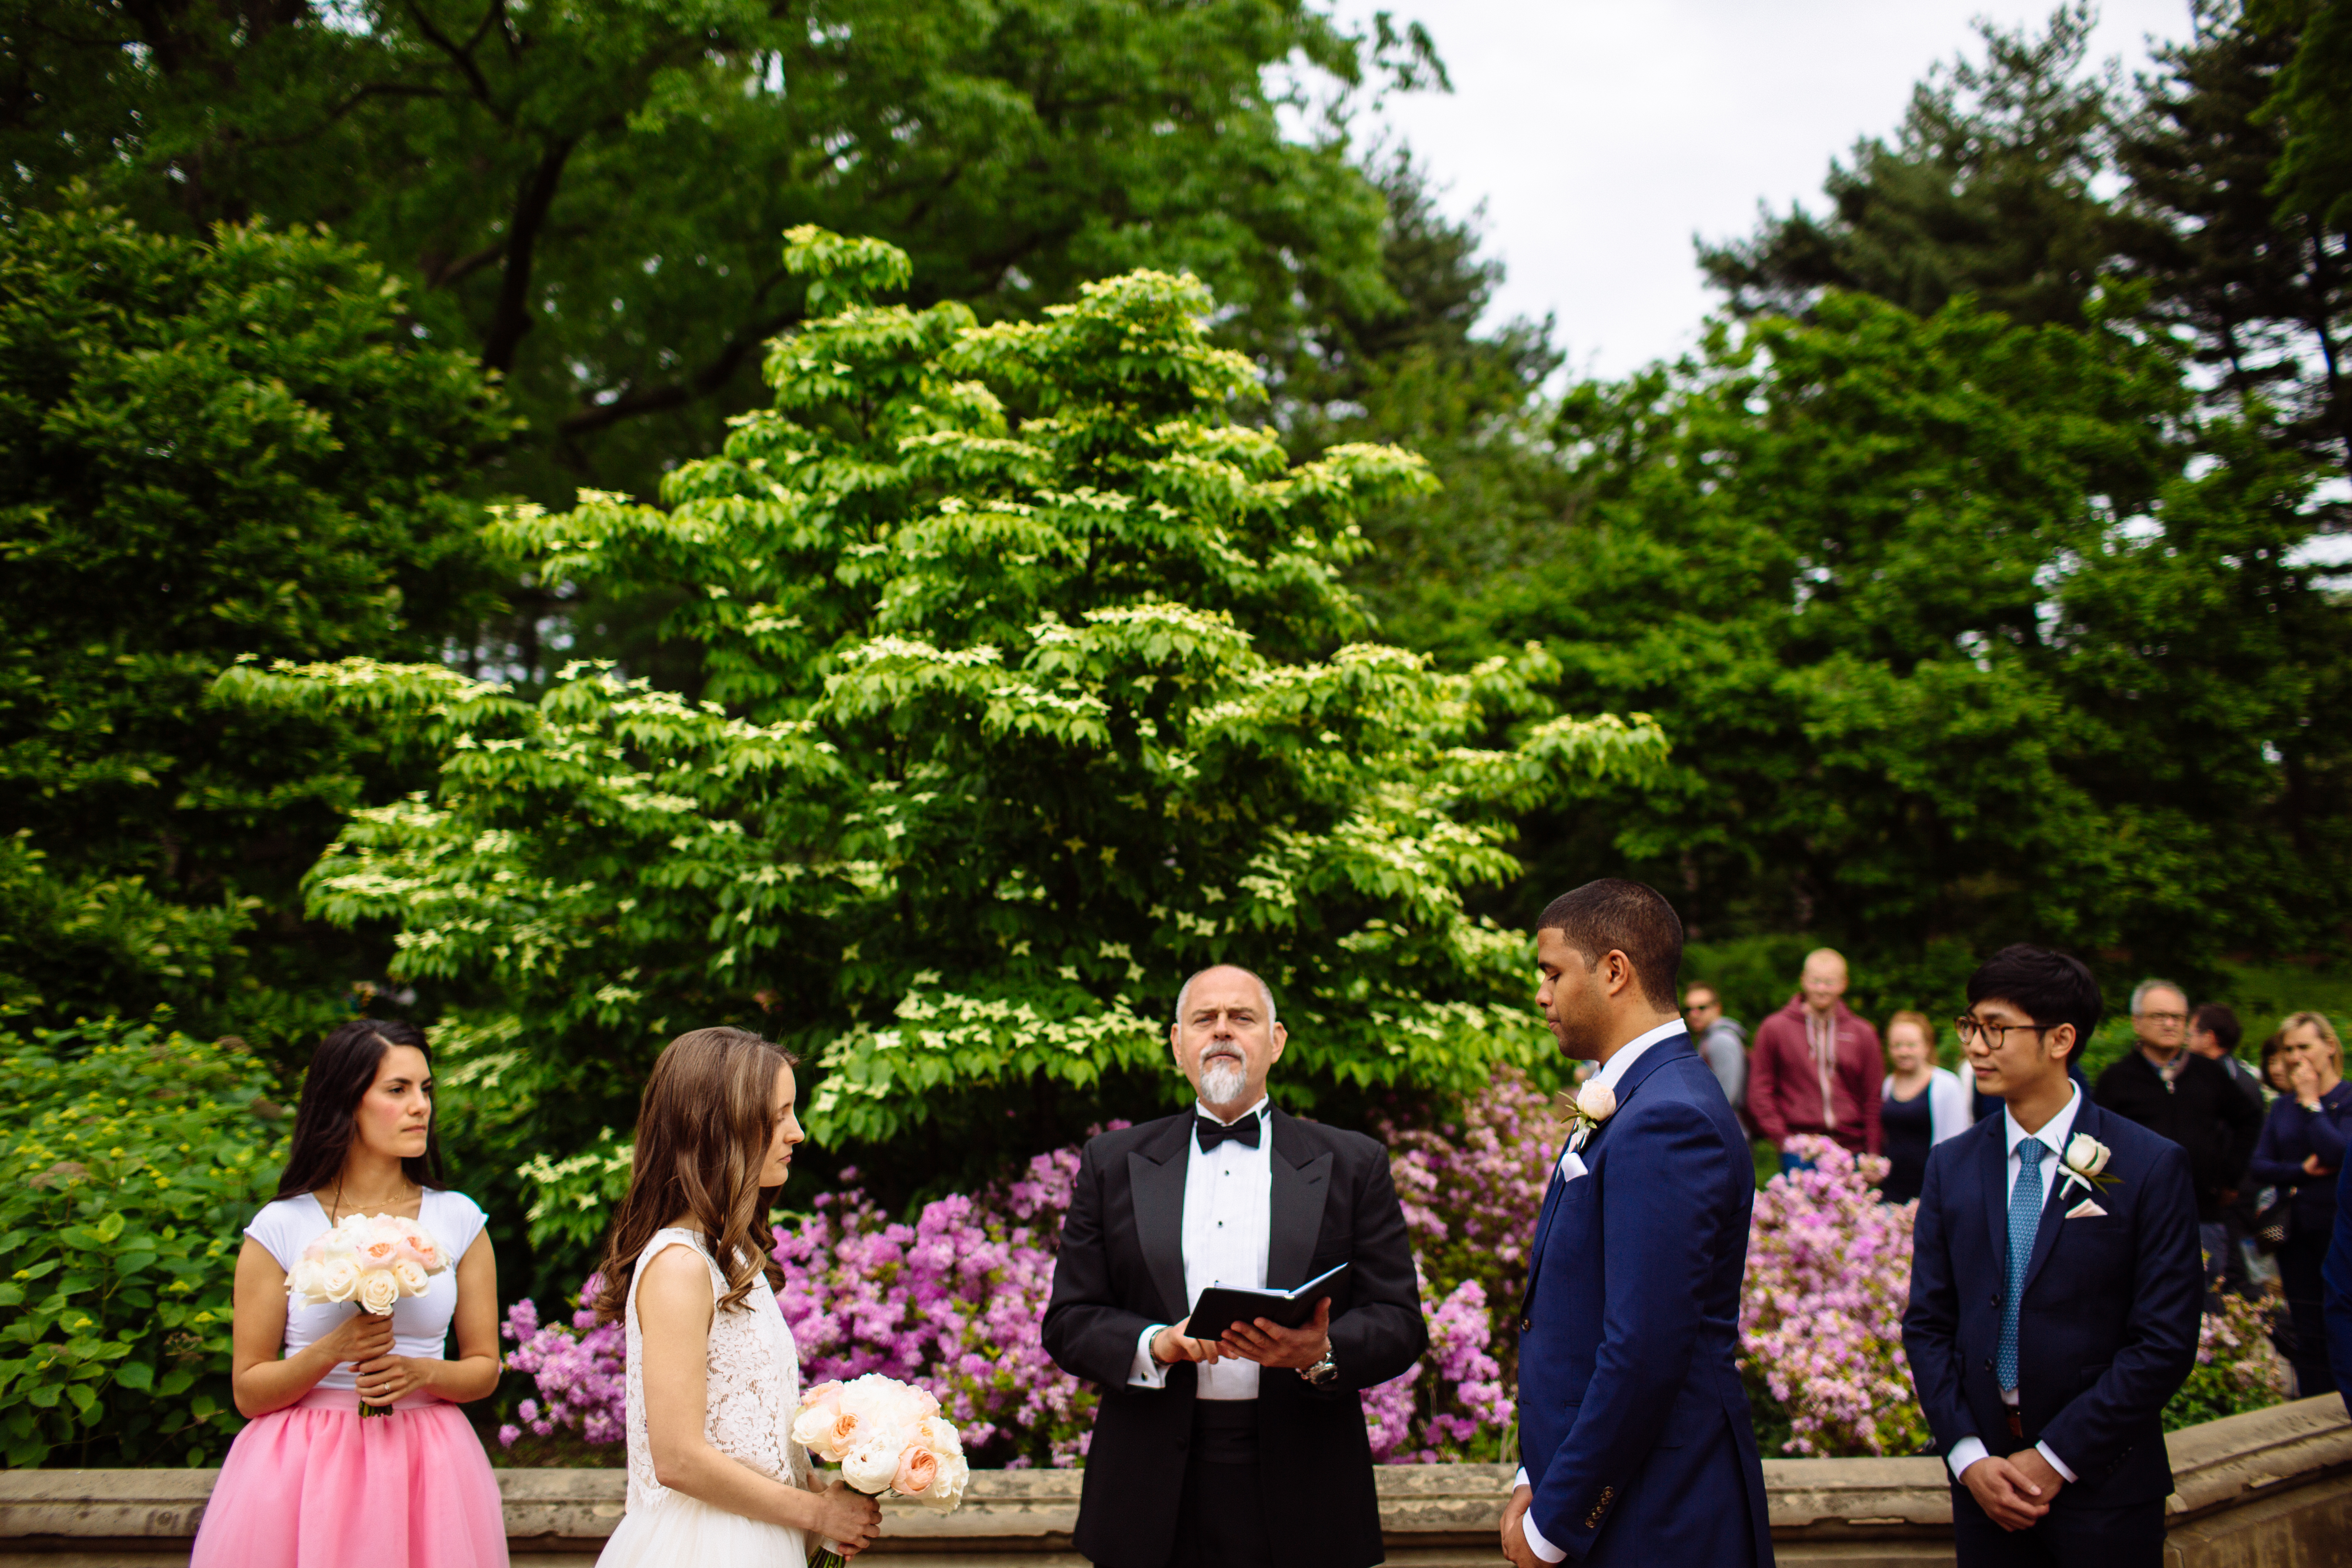 Wedding Ceremony at Central Park in the Summer